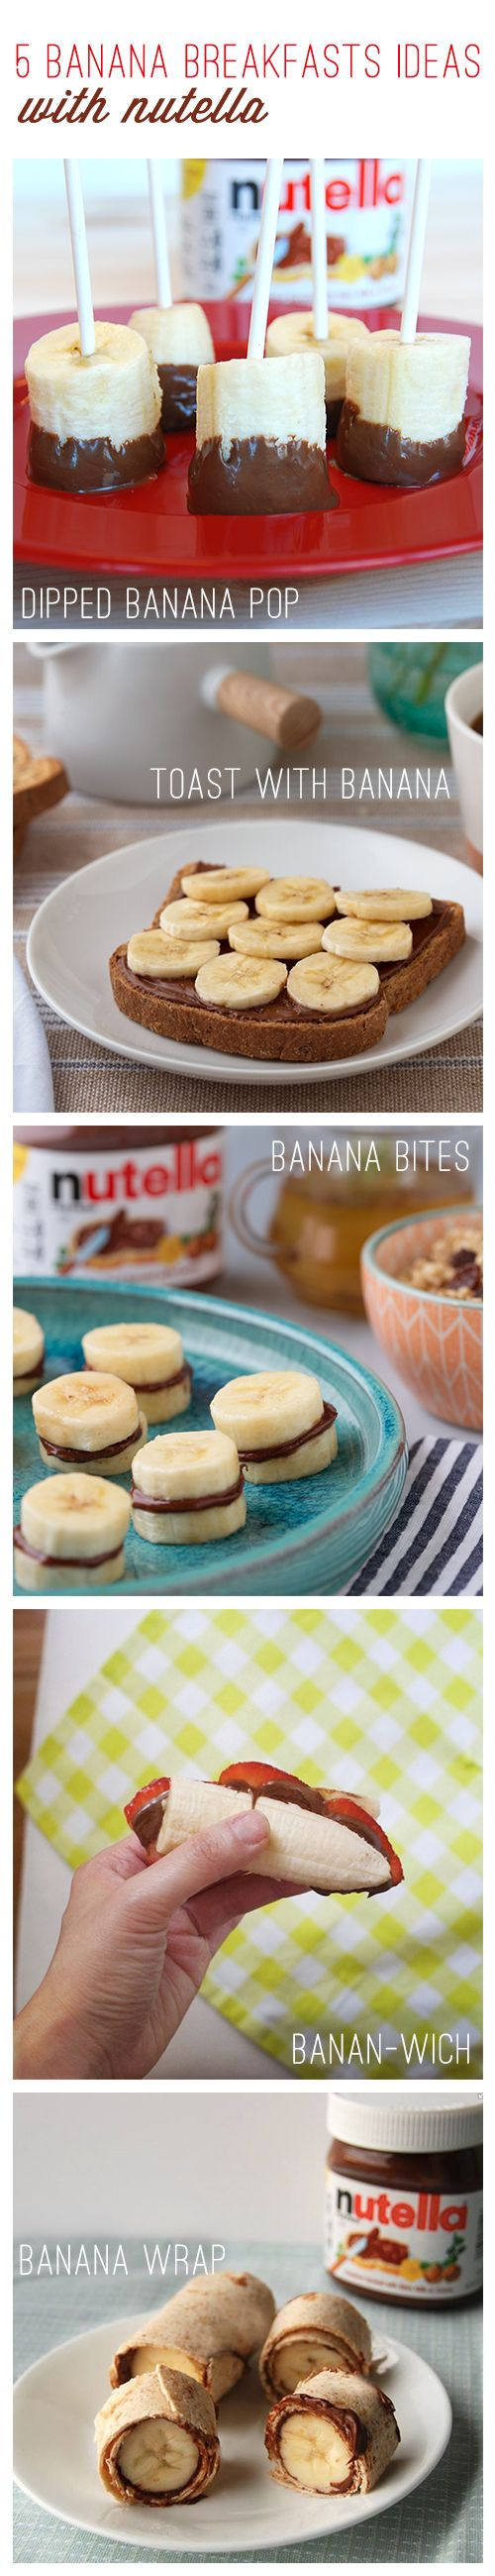 Who doesn't love bananas and Nutella®? Here are 5 fast, simple breakfast items your kids can go ape over. Great tasting and time saving, these dishes were made especially for school mornings. So whether it's a Dipped Banana Pop, Toast with Banana, Banana Bites, Banan-wich or a Banana Wrap, we know you'll be pleasantly pleased.